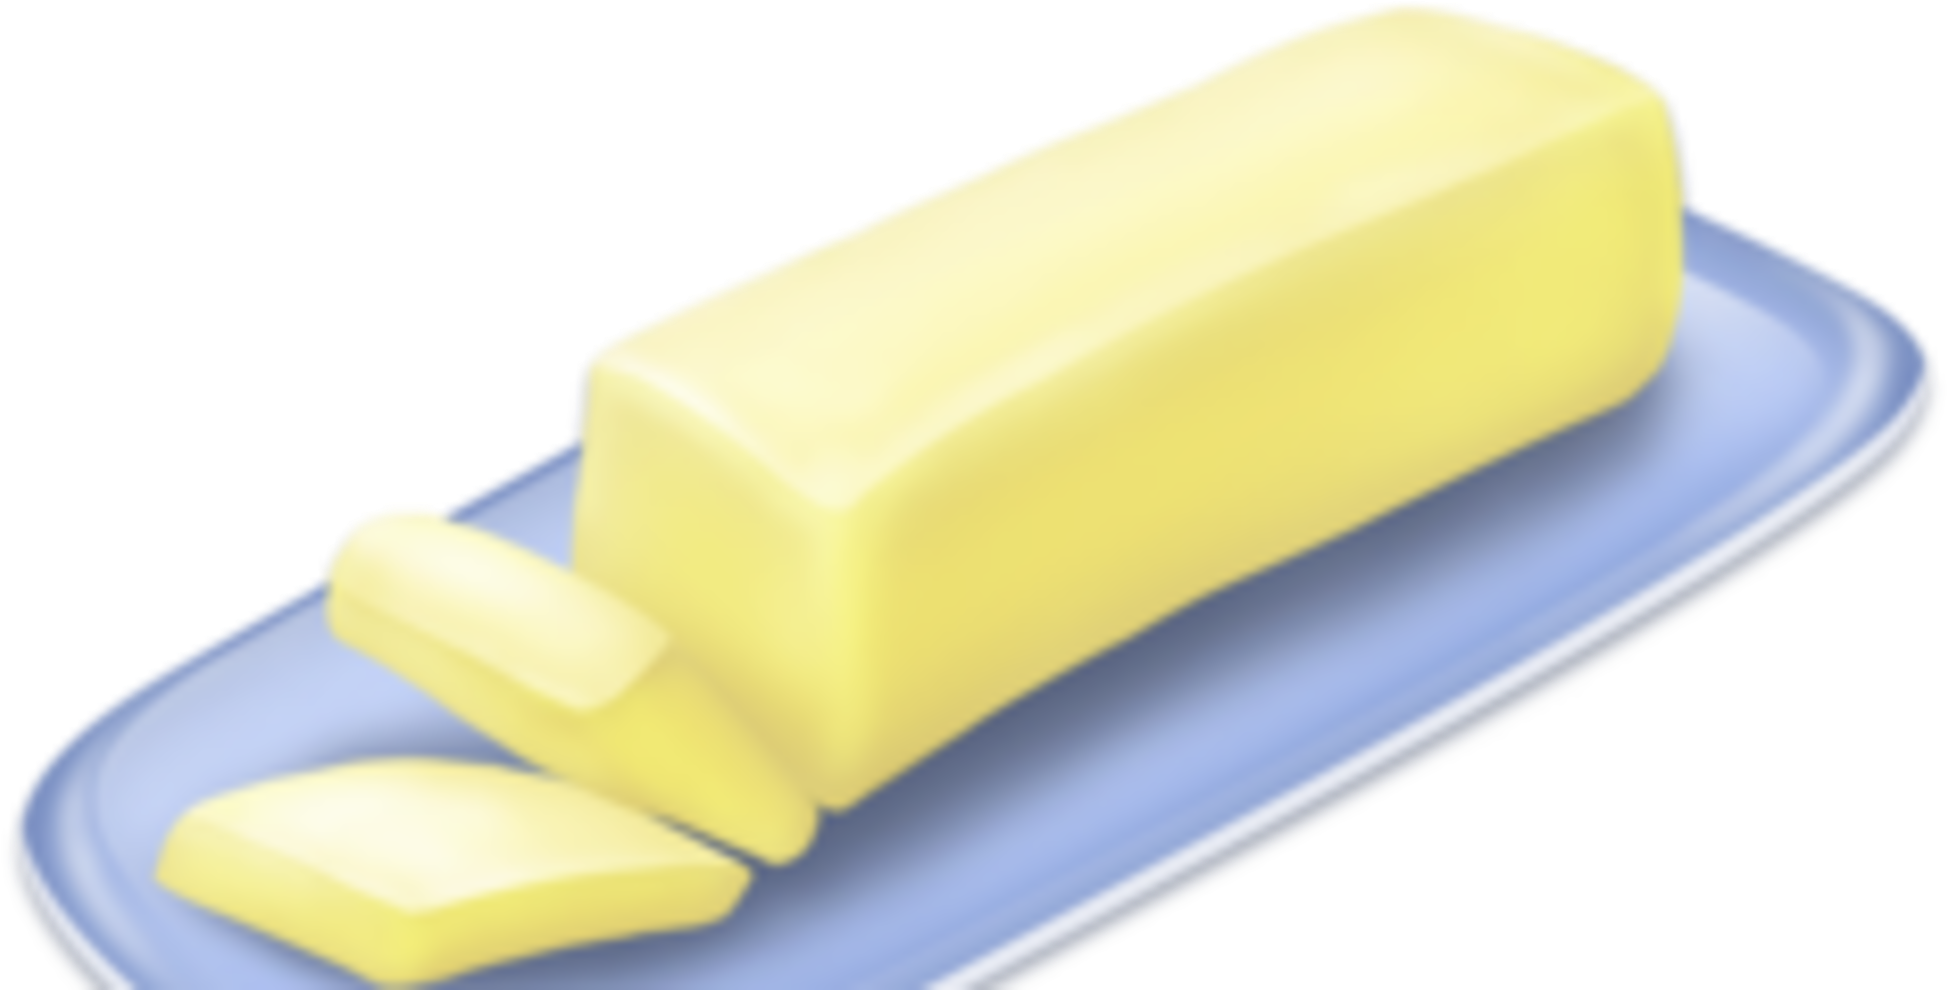 HD A Butter Emoji Is Coming , Free Unlimited Download #3278095.